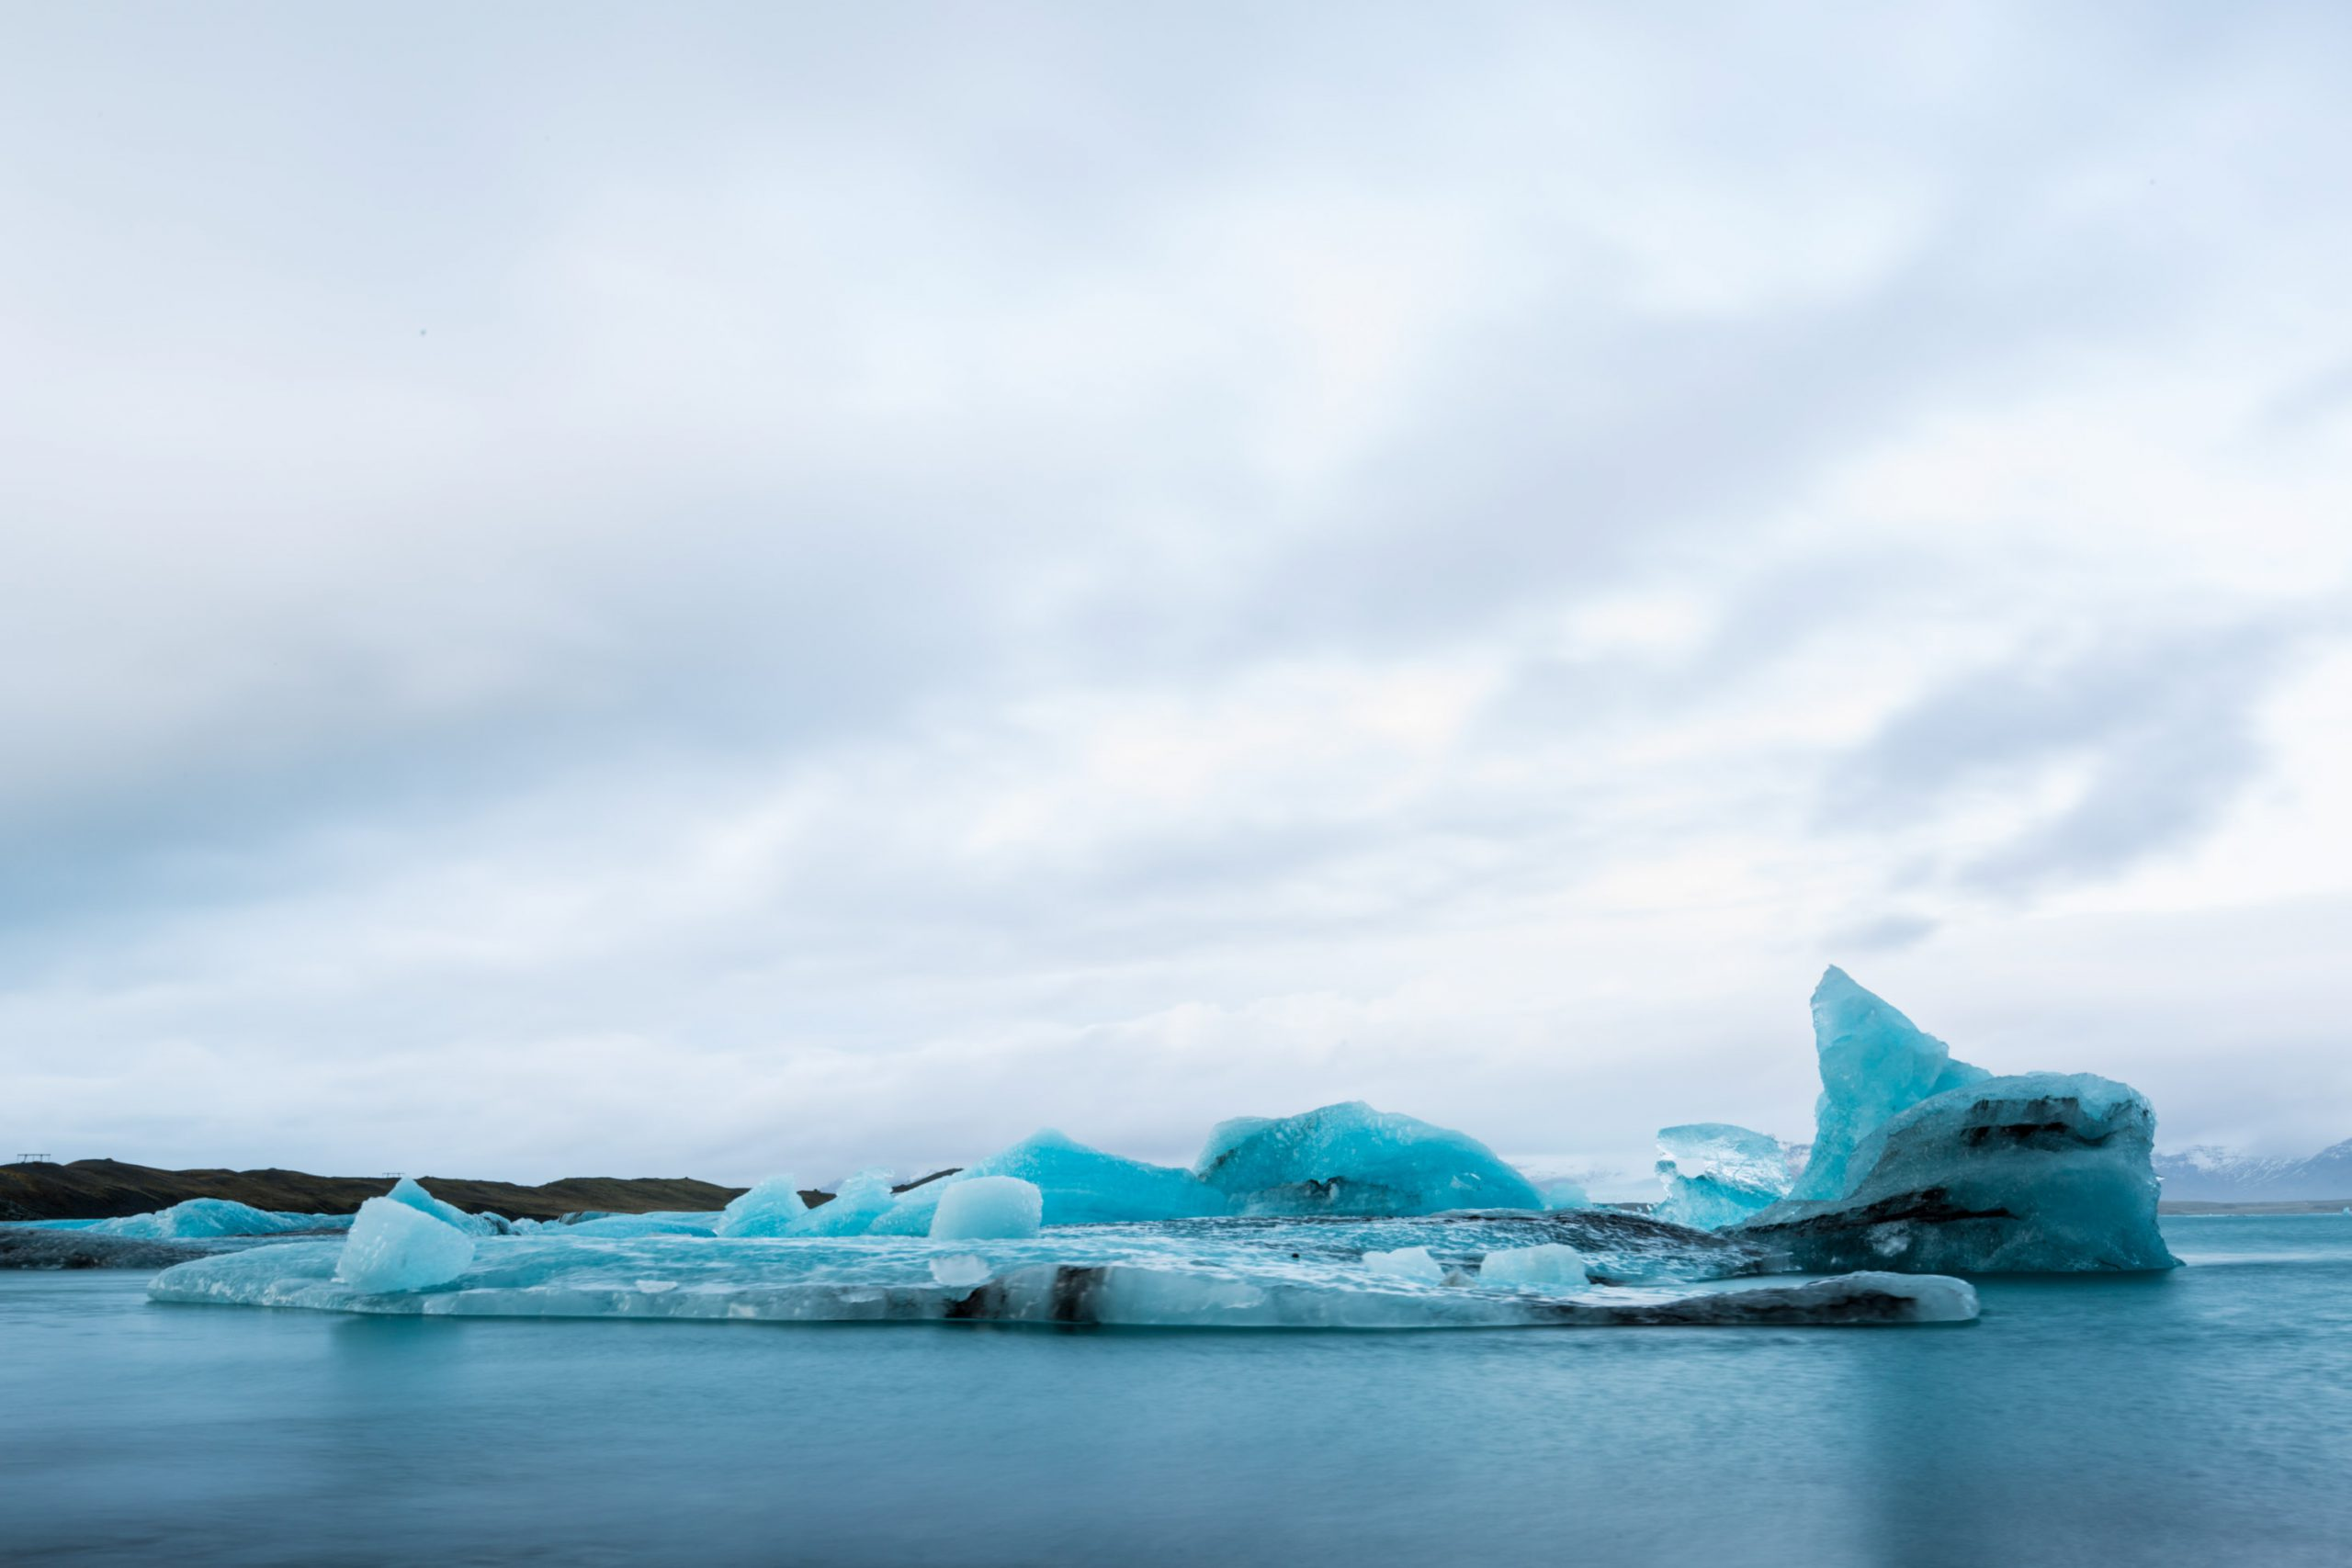 Jökulsárlón lagoon Iceland - Pictures Of Glaciers In Iceland.